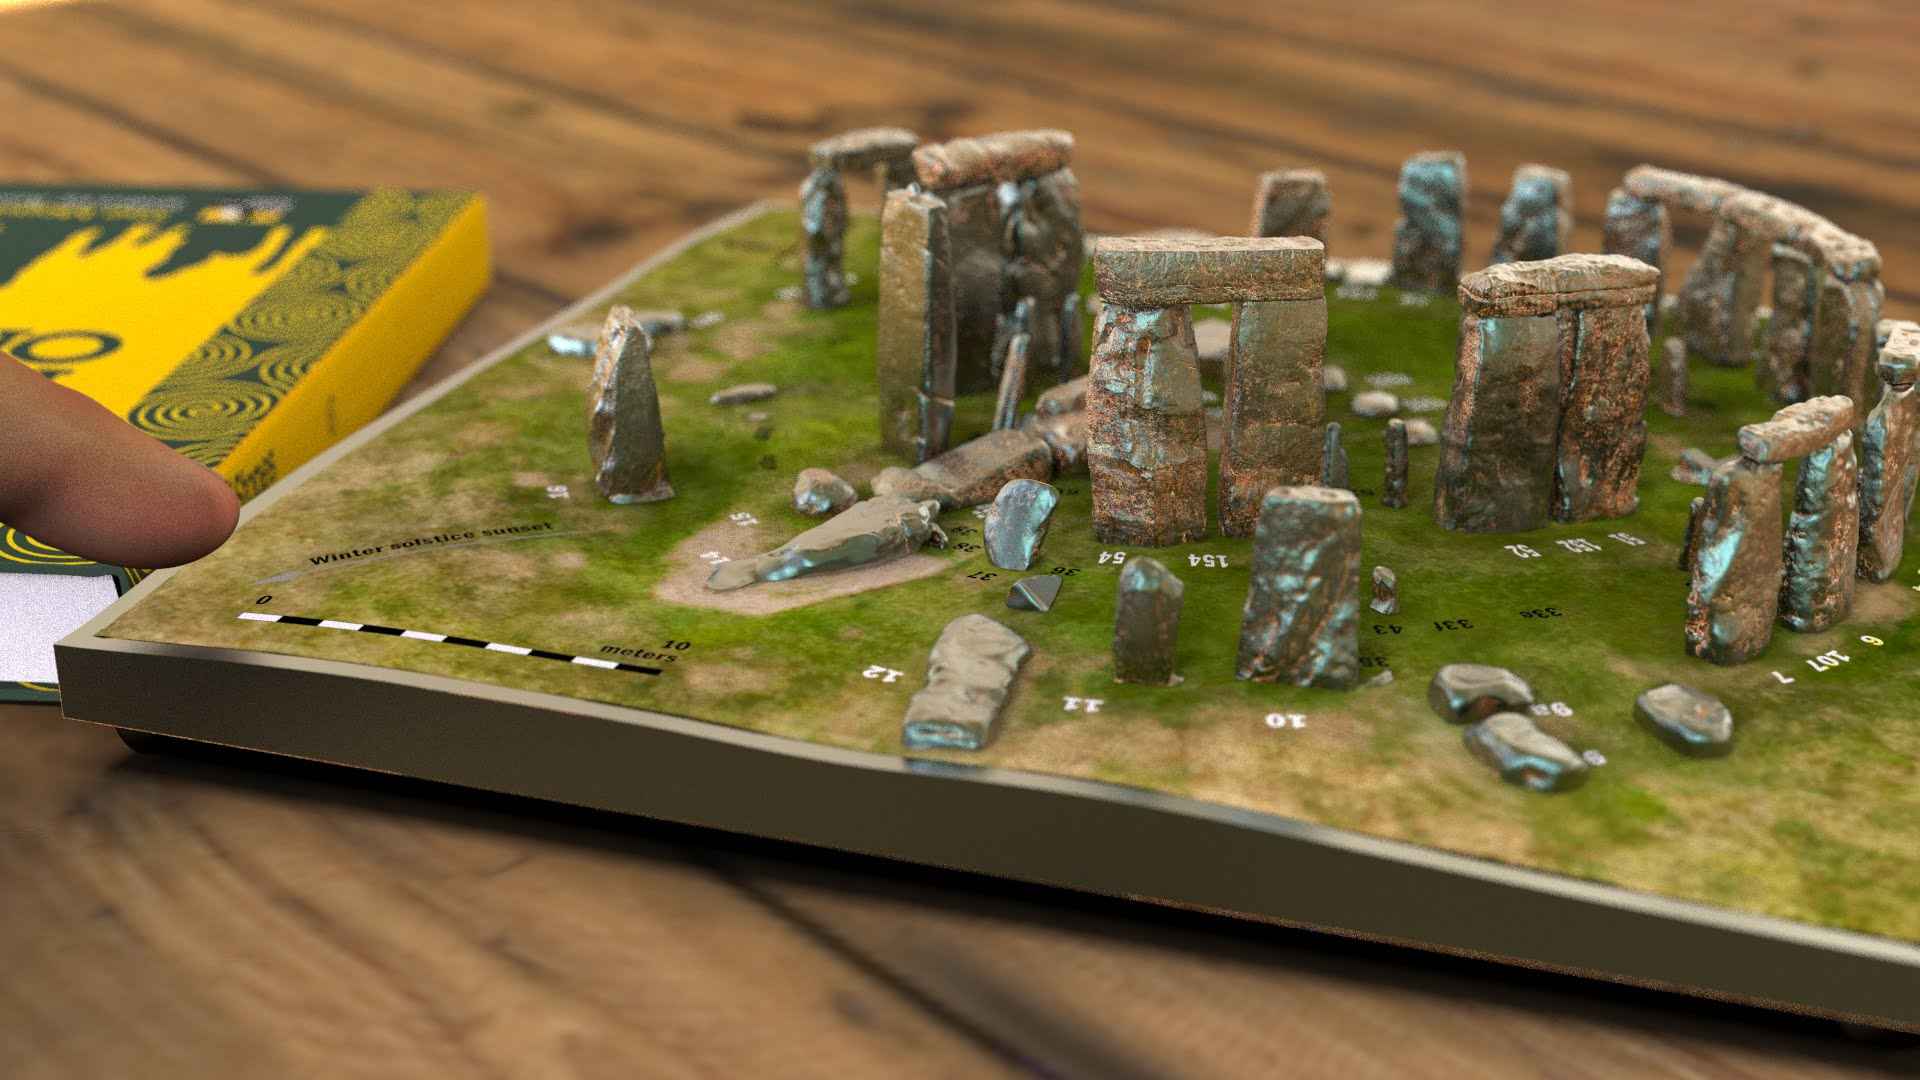 Buy Stonehenge Models: Light rust patina on cold cast Stonehenge model replica 195 x 195 mm or 7.7 x 7.7 inches square base with grass decal with or without numbered stones on ground map 008  - 200th scale pick n mix -